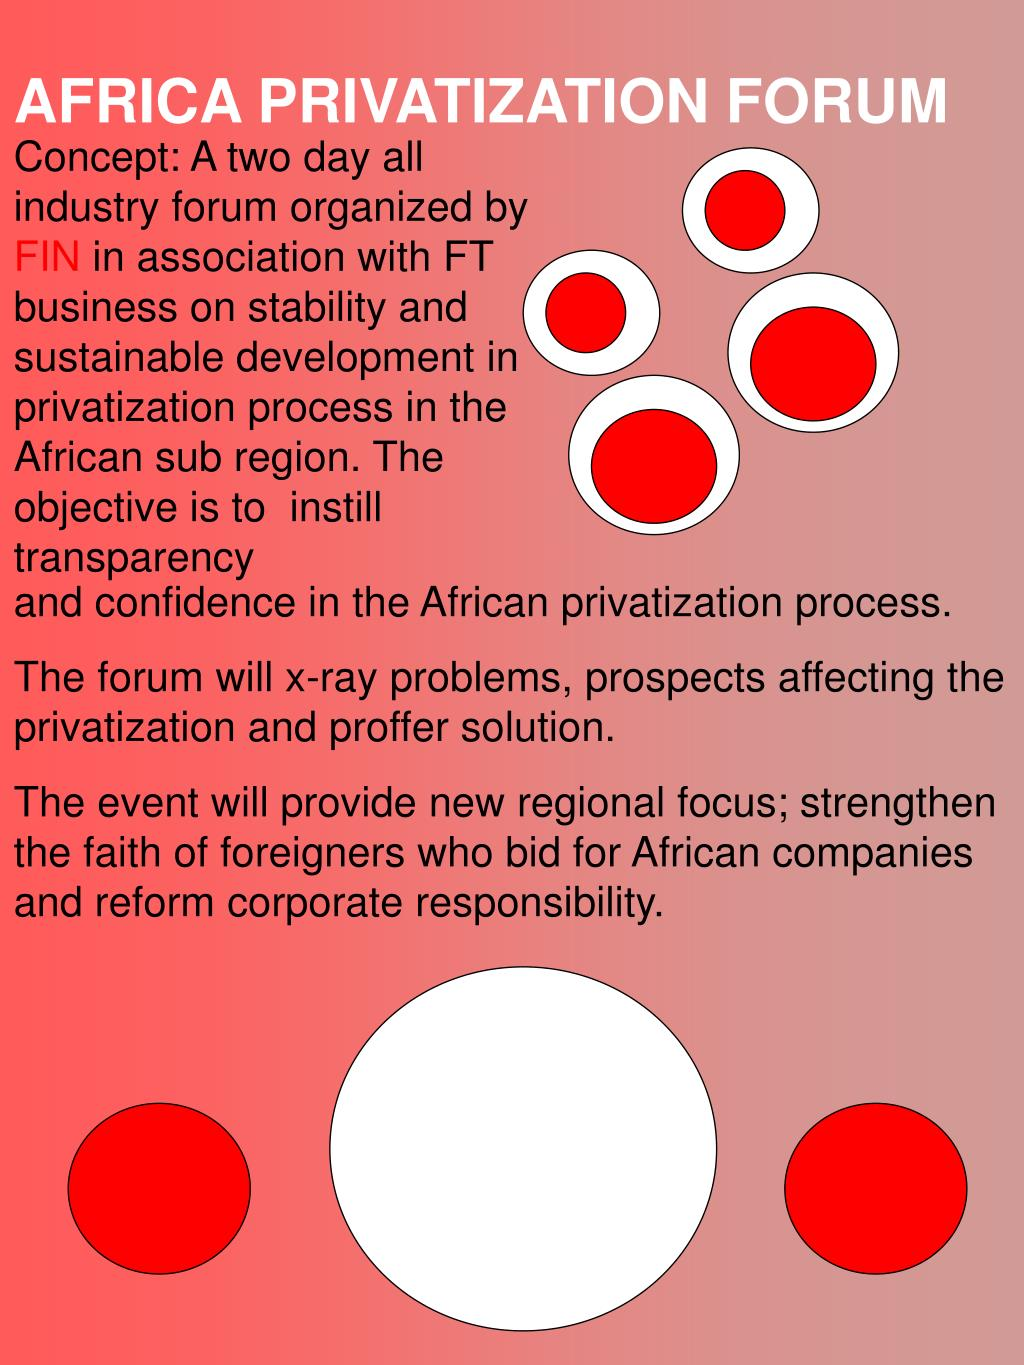 AFRICA PRIVATIZATION FORUM